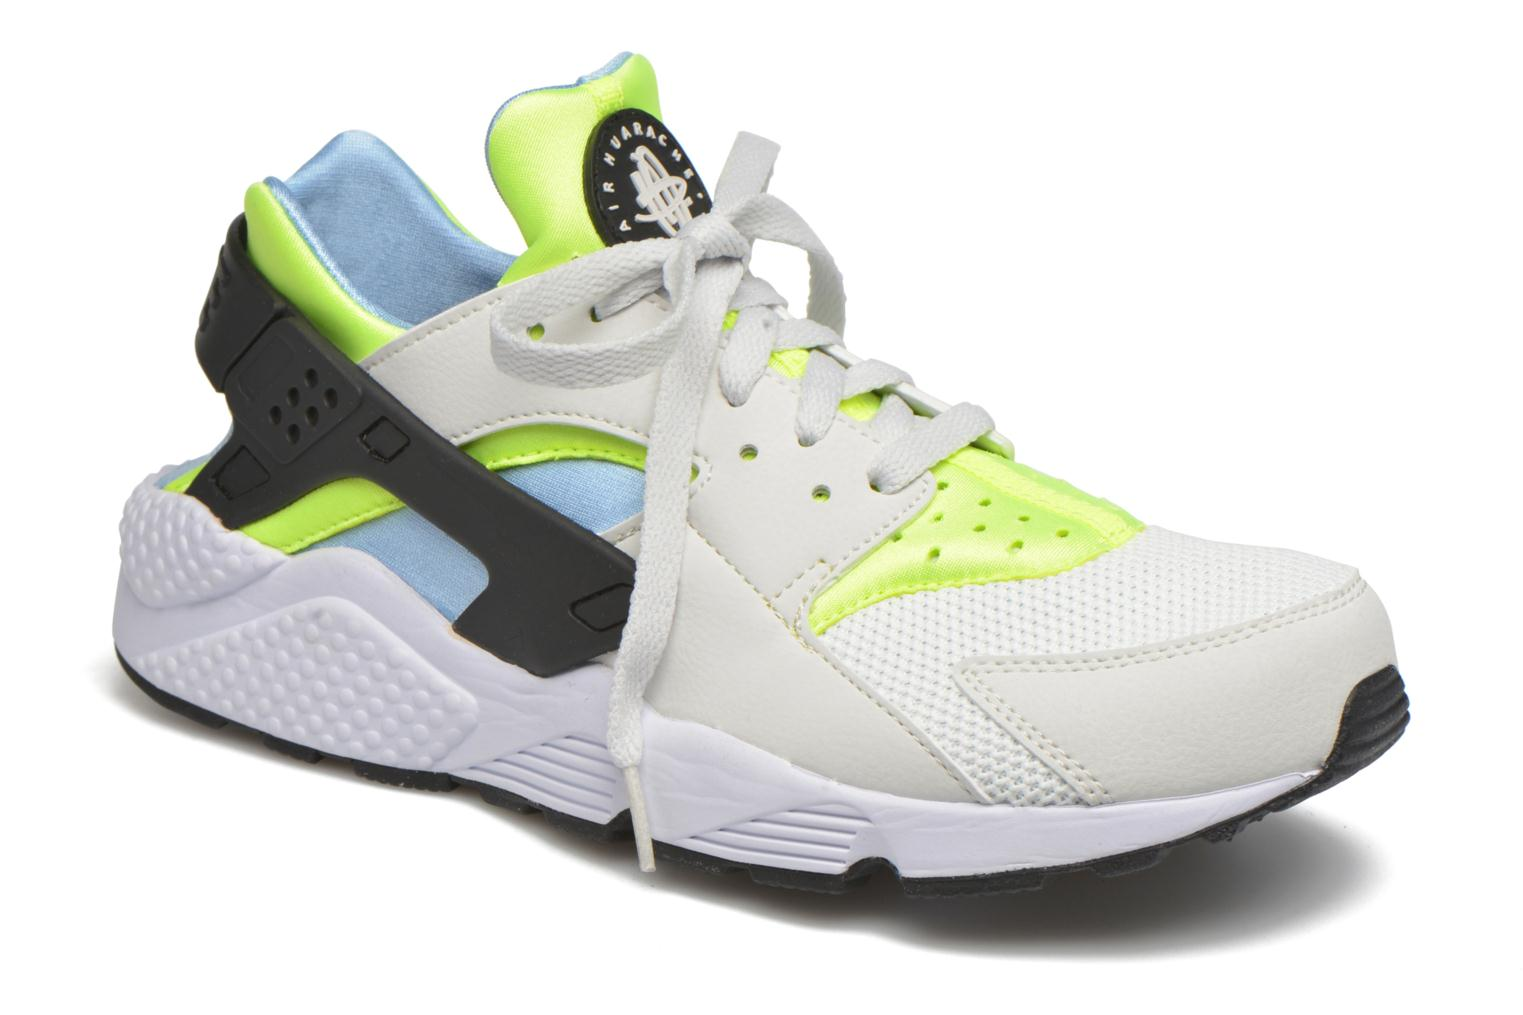 Nike Air Huarache Off White/Barely Volt-Vlt-Blcp